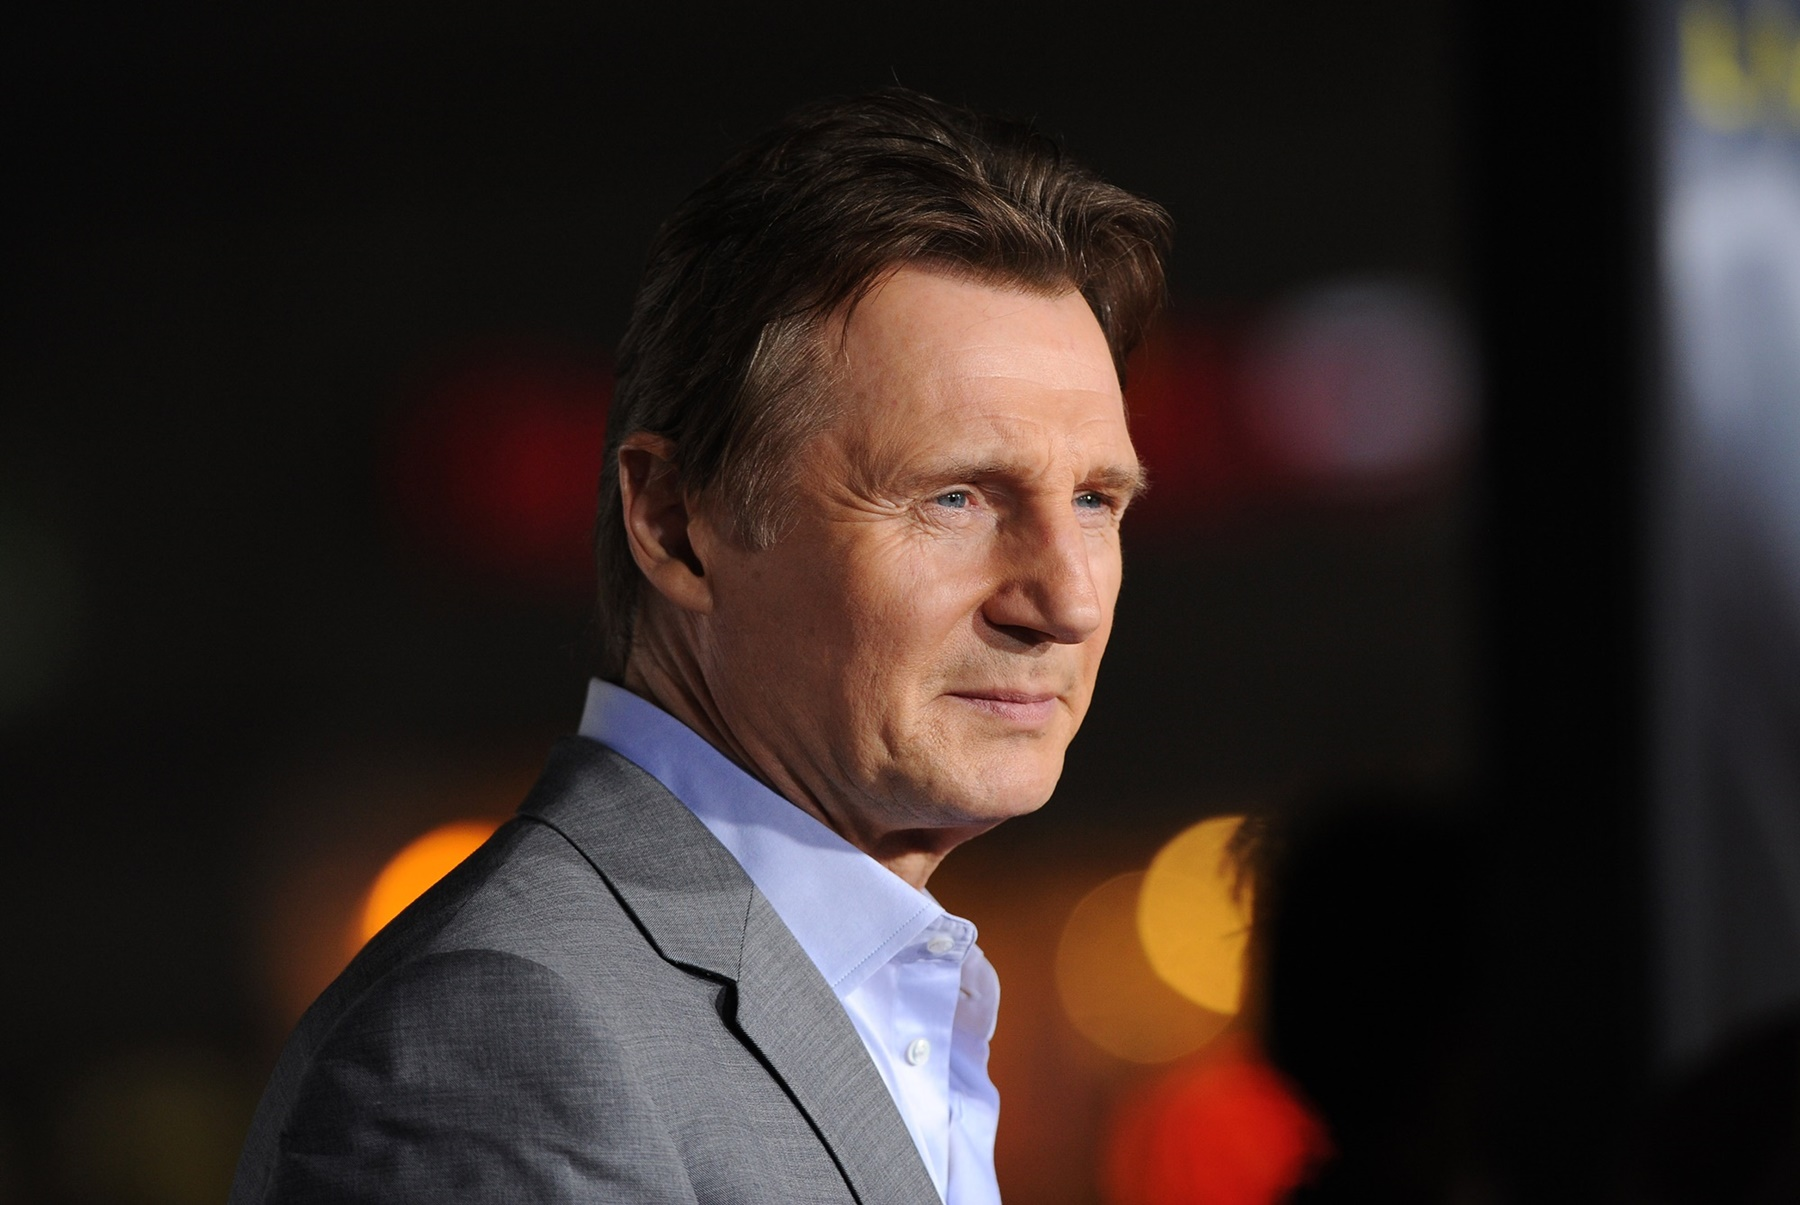 """liam-neeson-cancels-tv-appearance-after-admitting-he-wanted-to-kill-a-random-black-man-after-friends-rape-can-his-career-recover-after-confessing-to-some-racist-tendencies"""